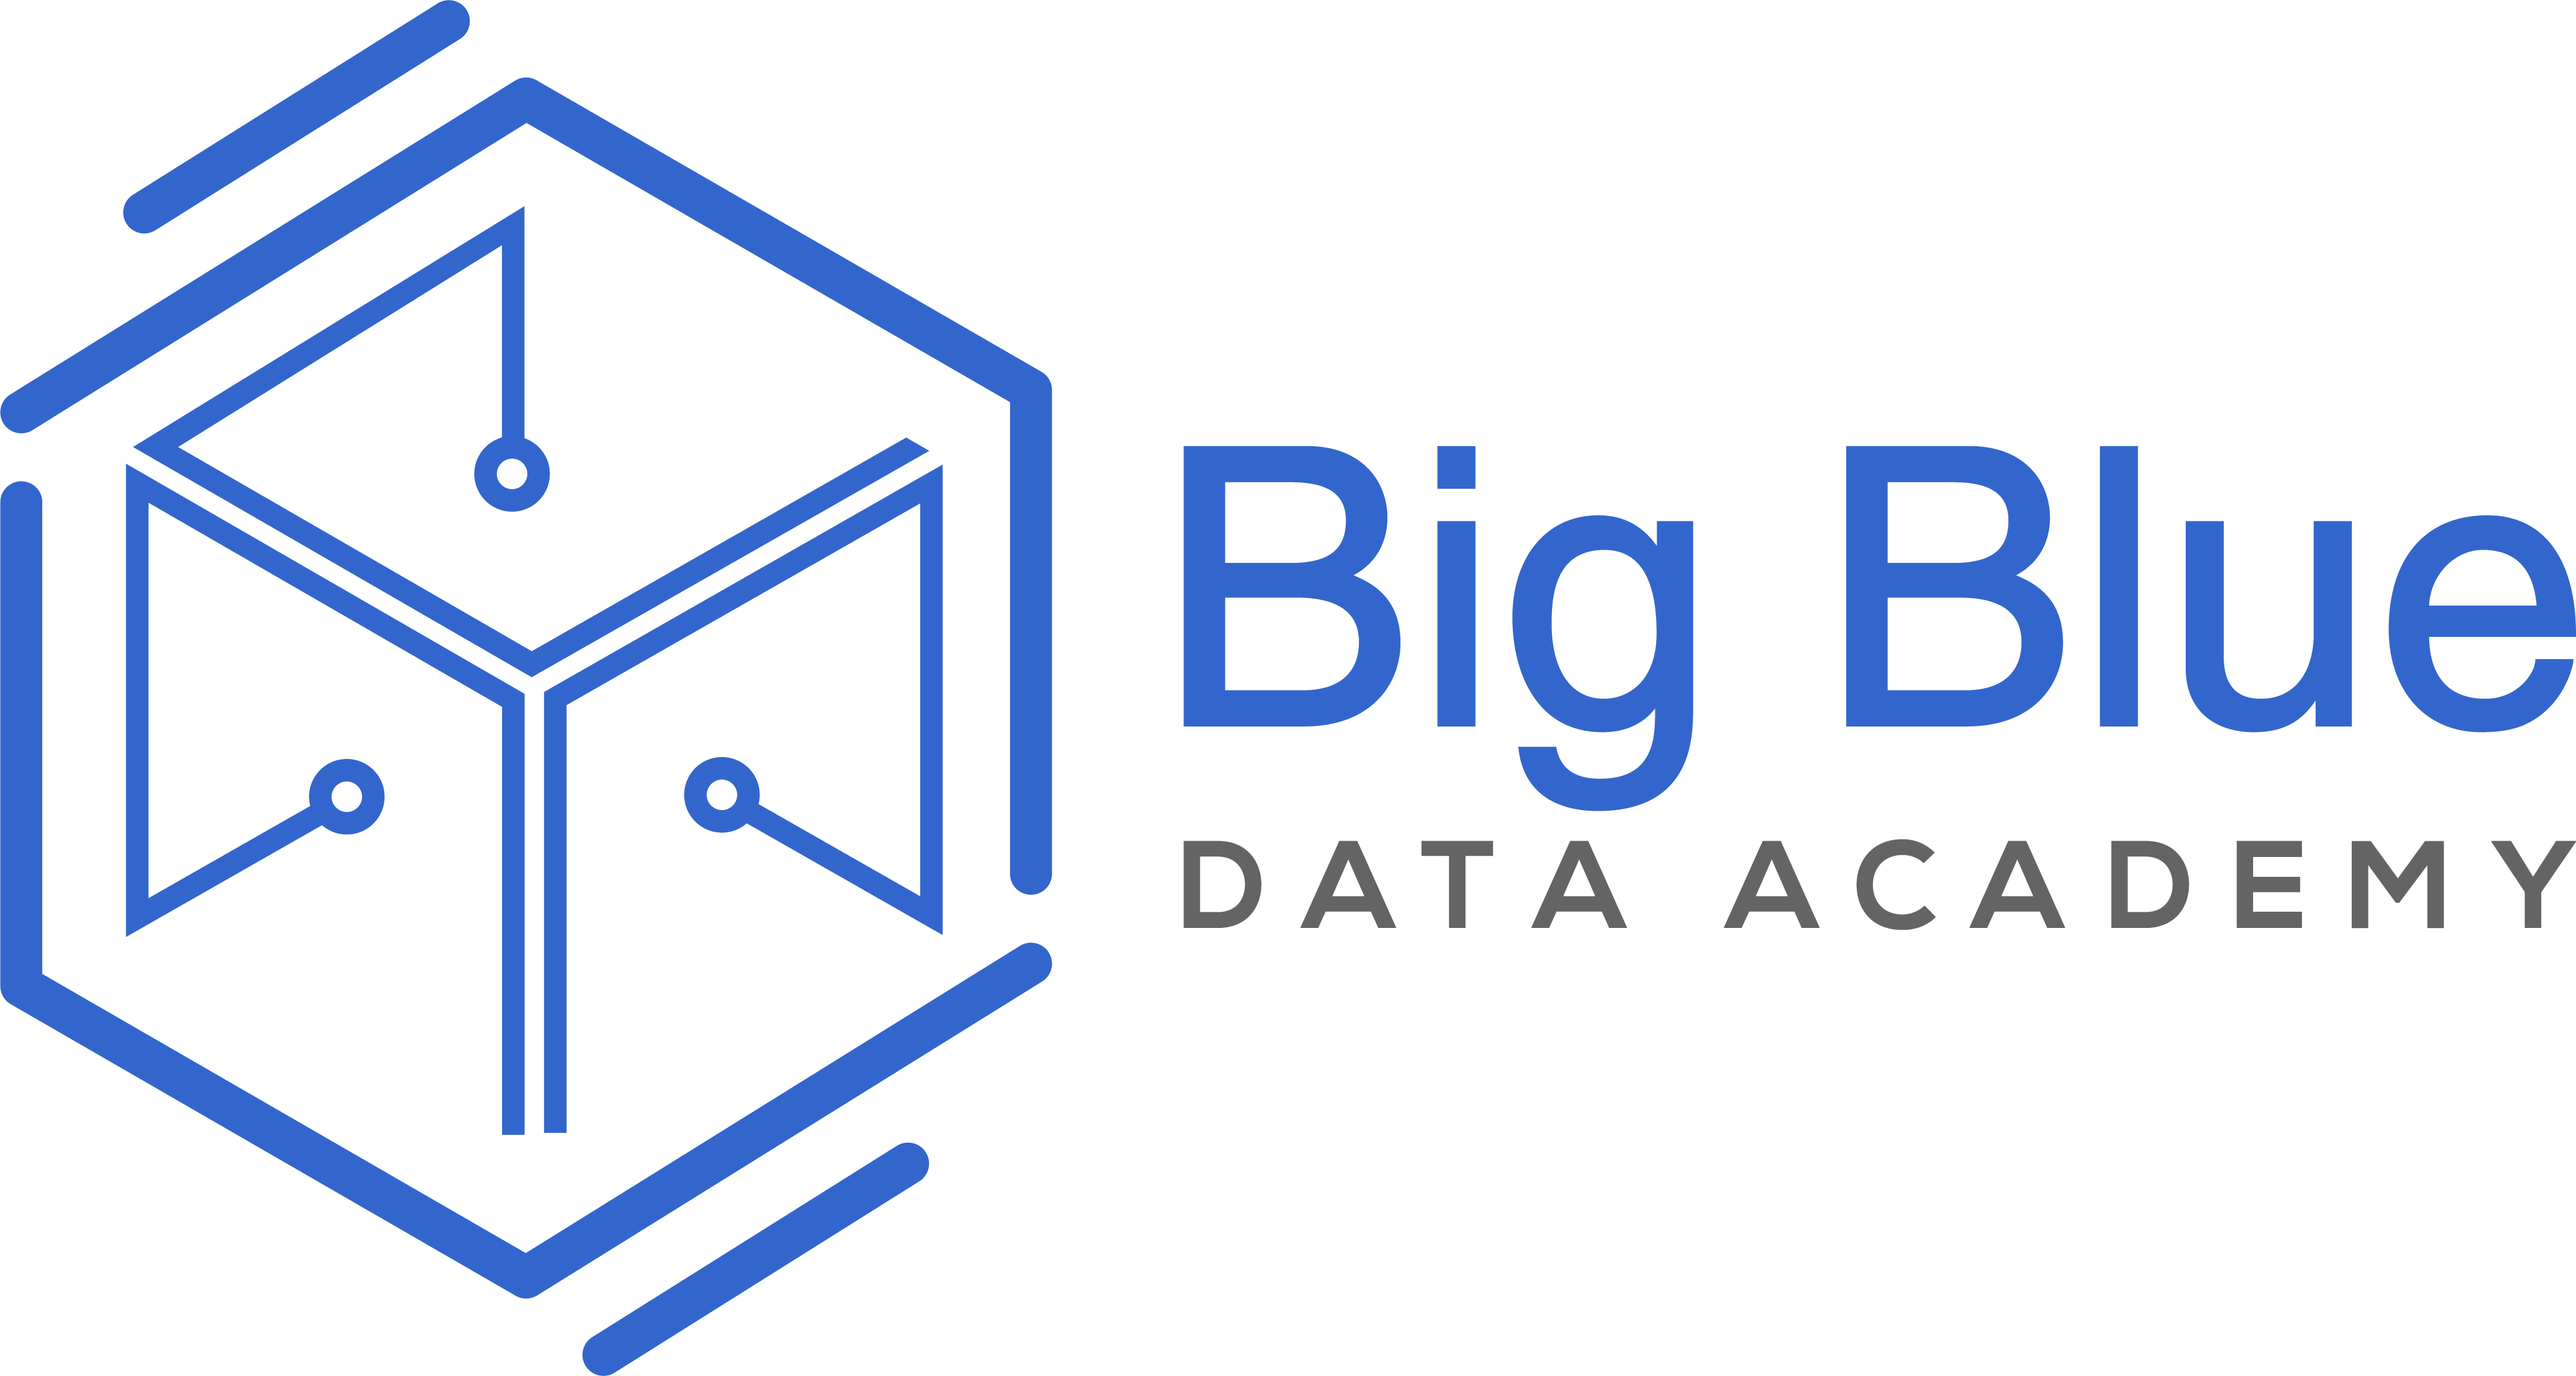 Big Blue - The Data Academy